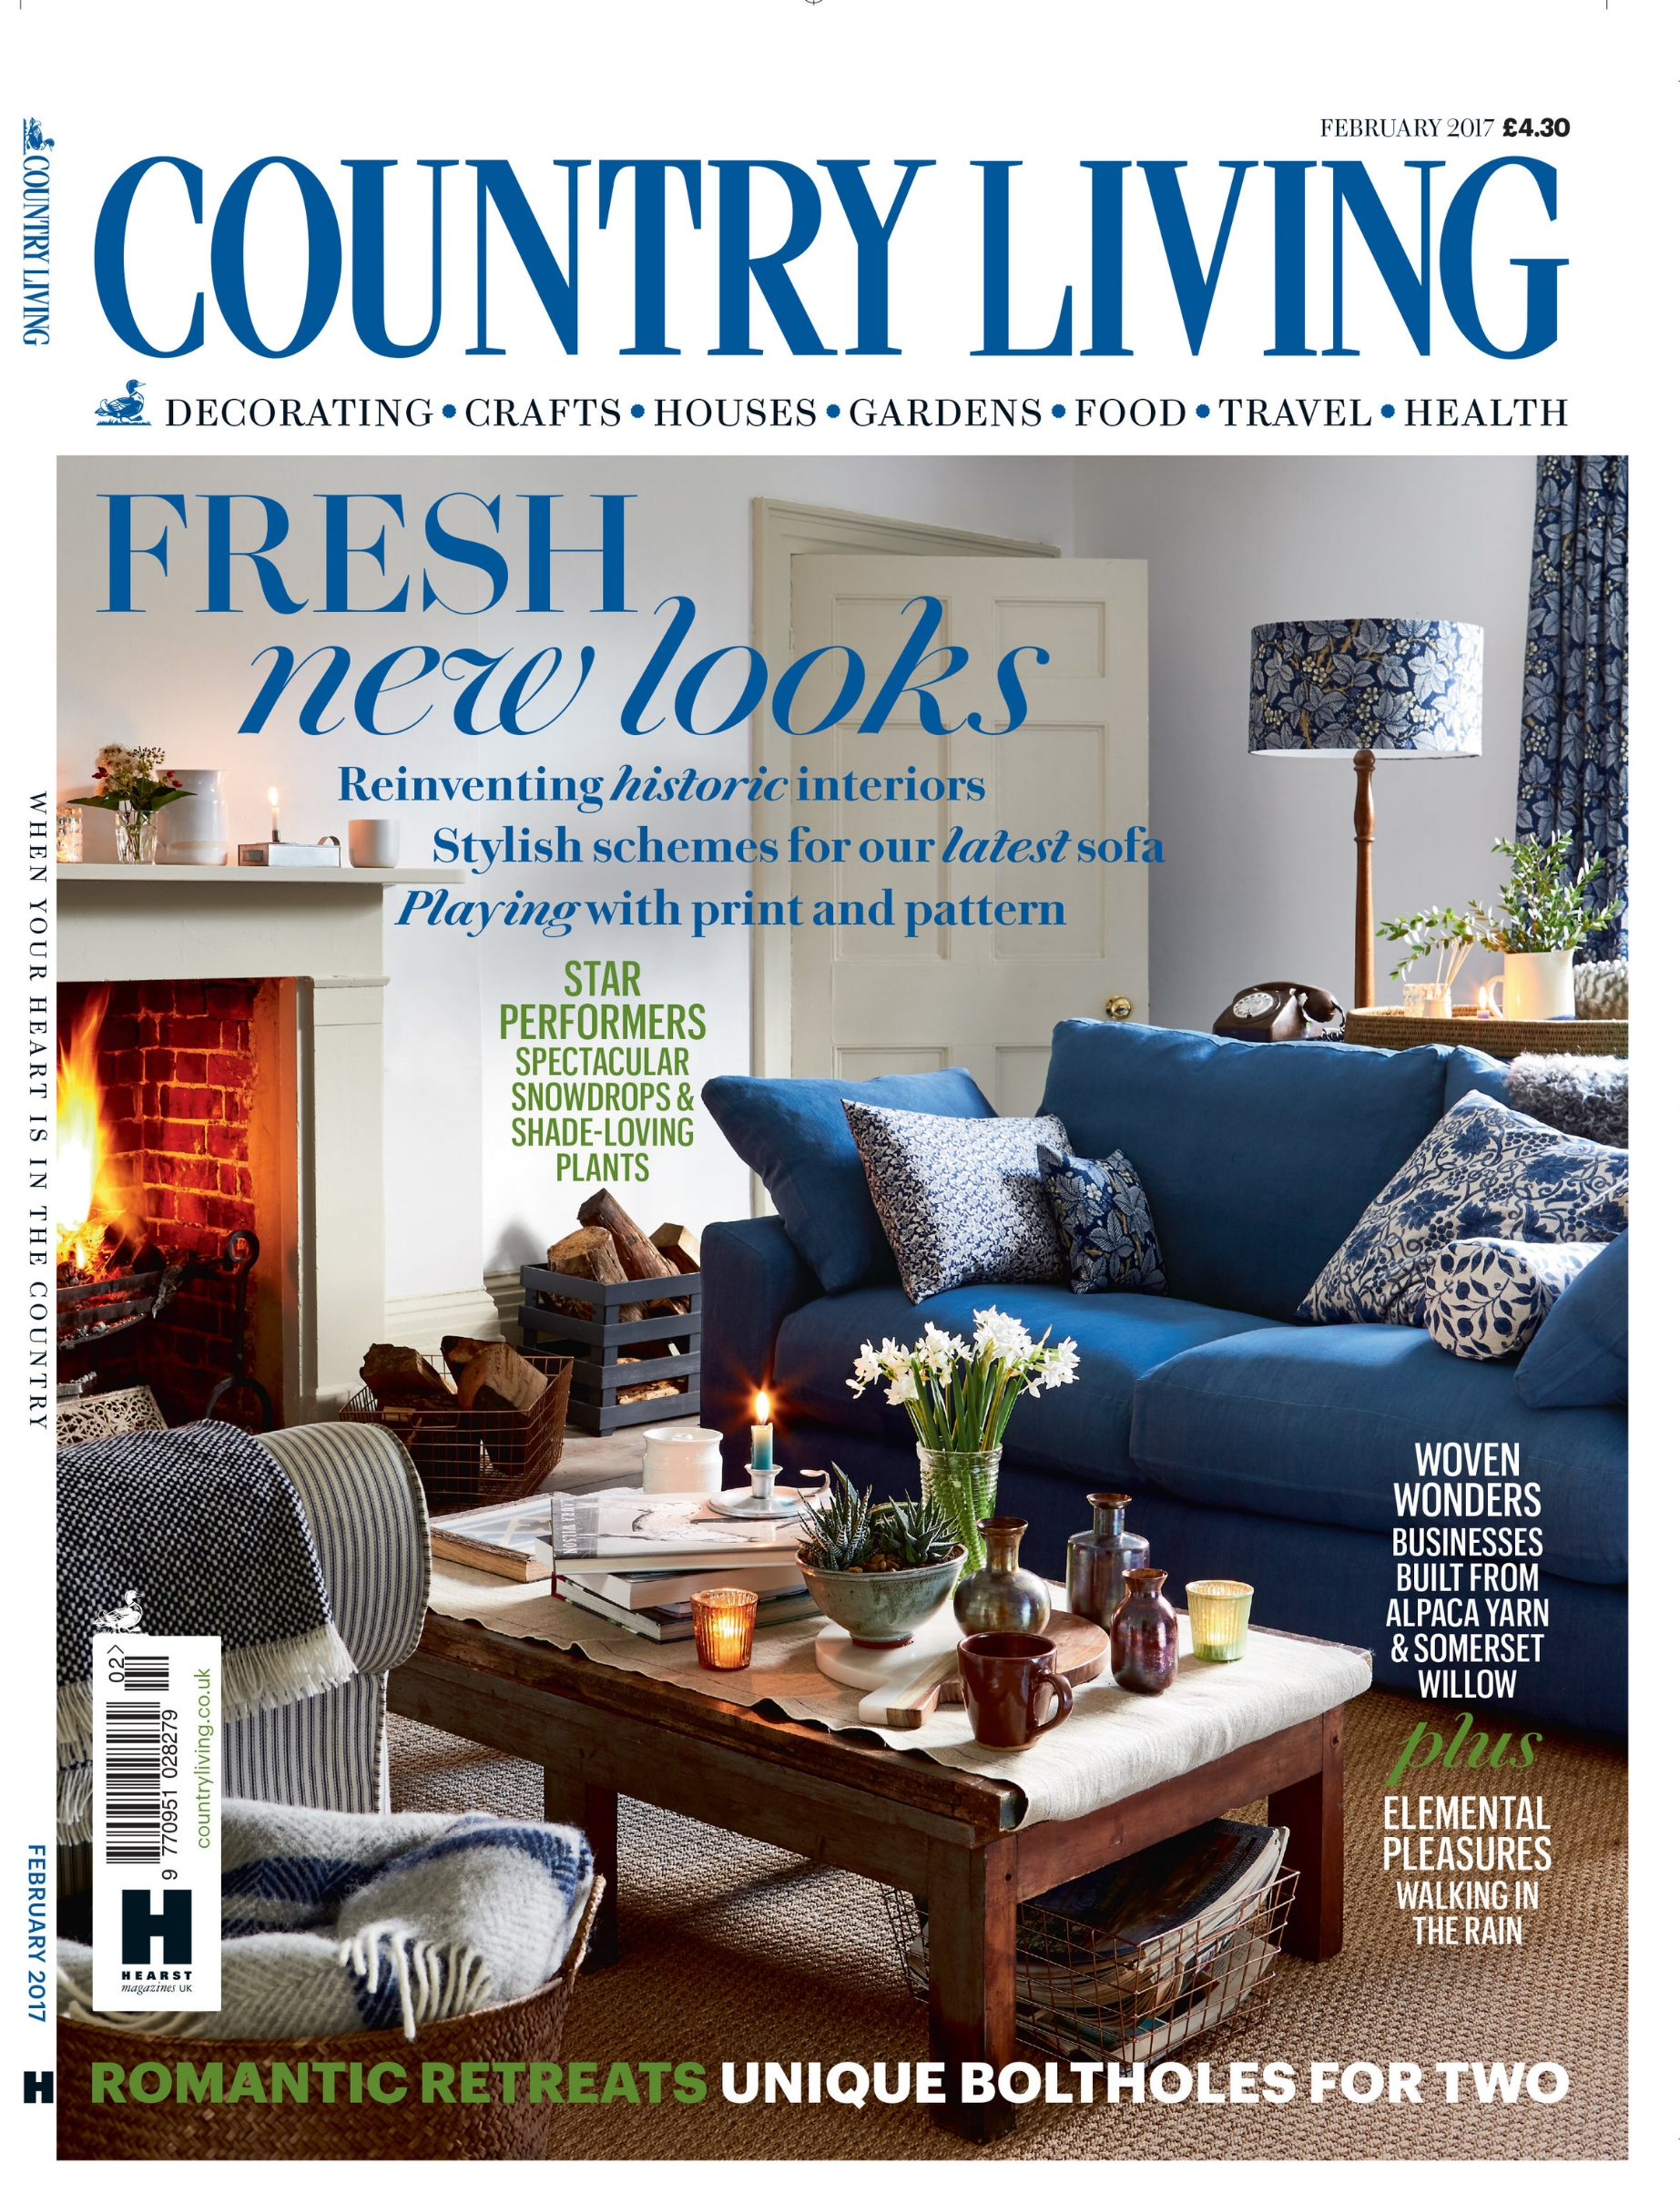 Feb2017CountryLivingCover.jpg